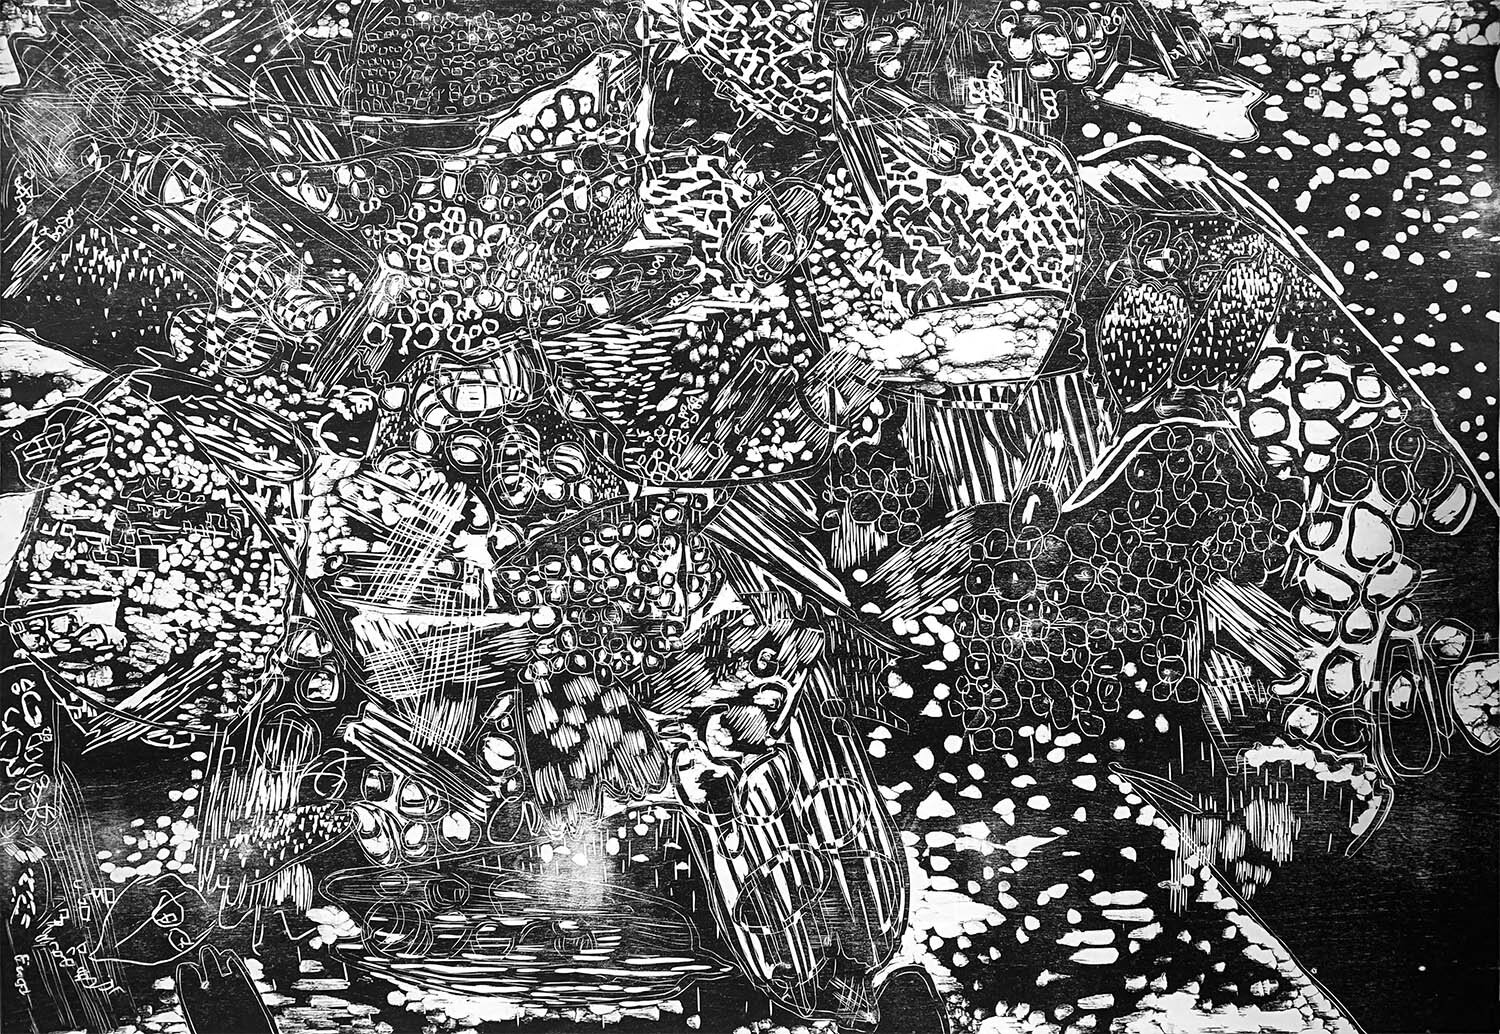 Reticulate, ed. 1/5, hand-printed woodcut on paper, 42 x 60 in.